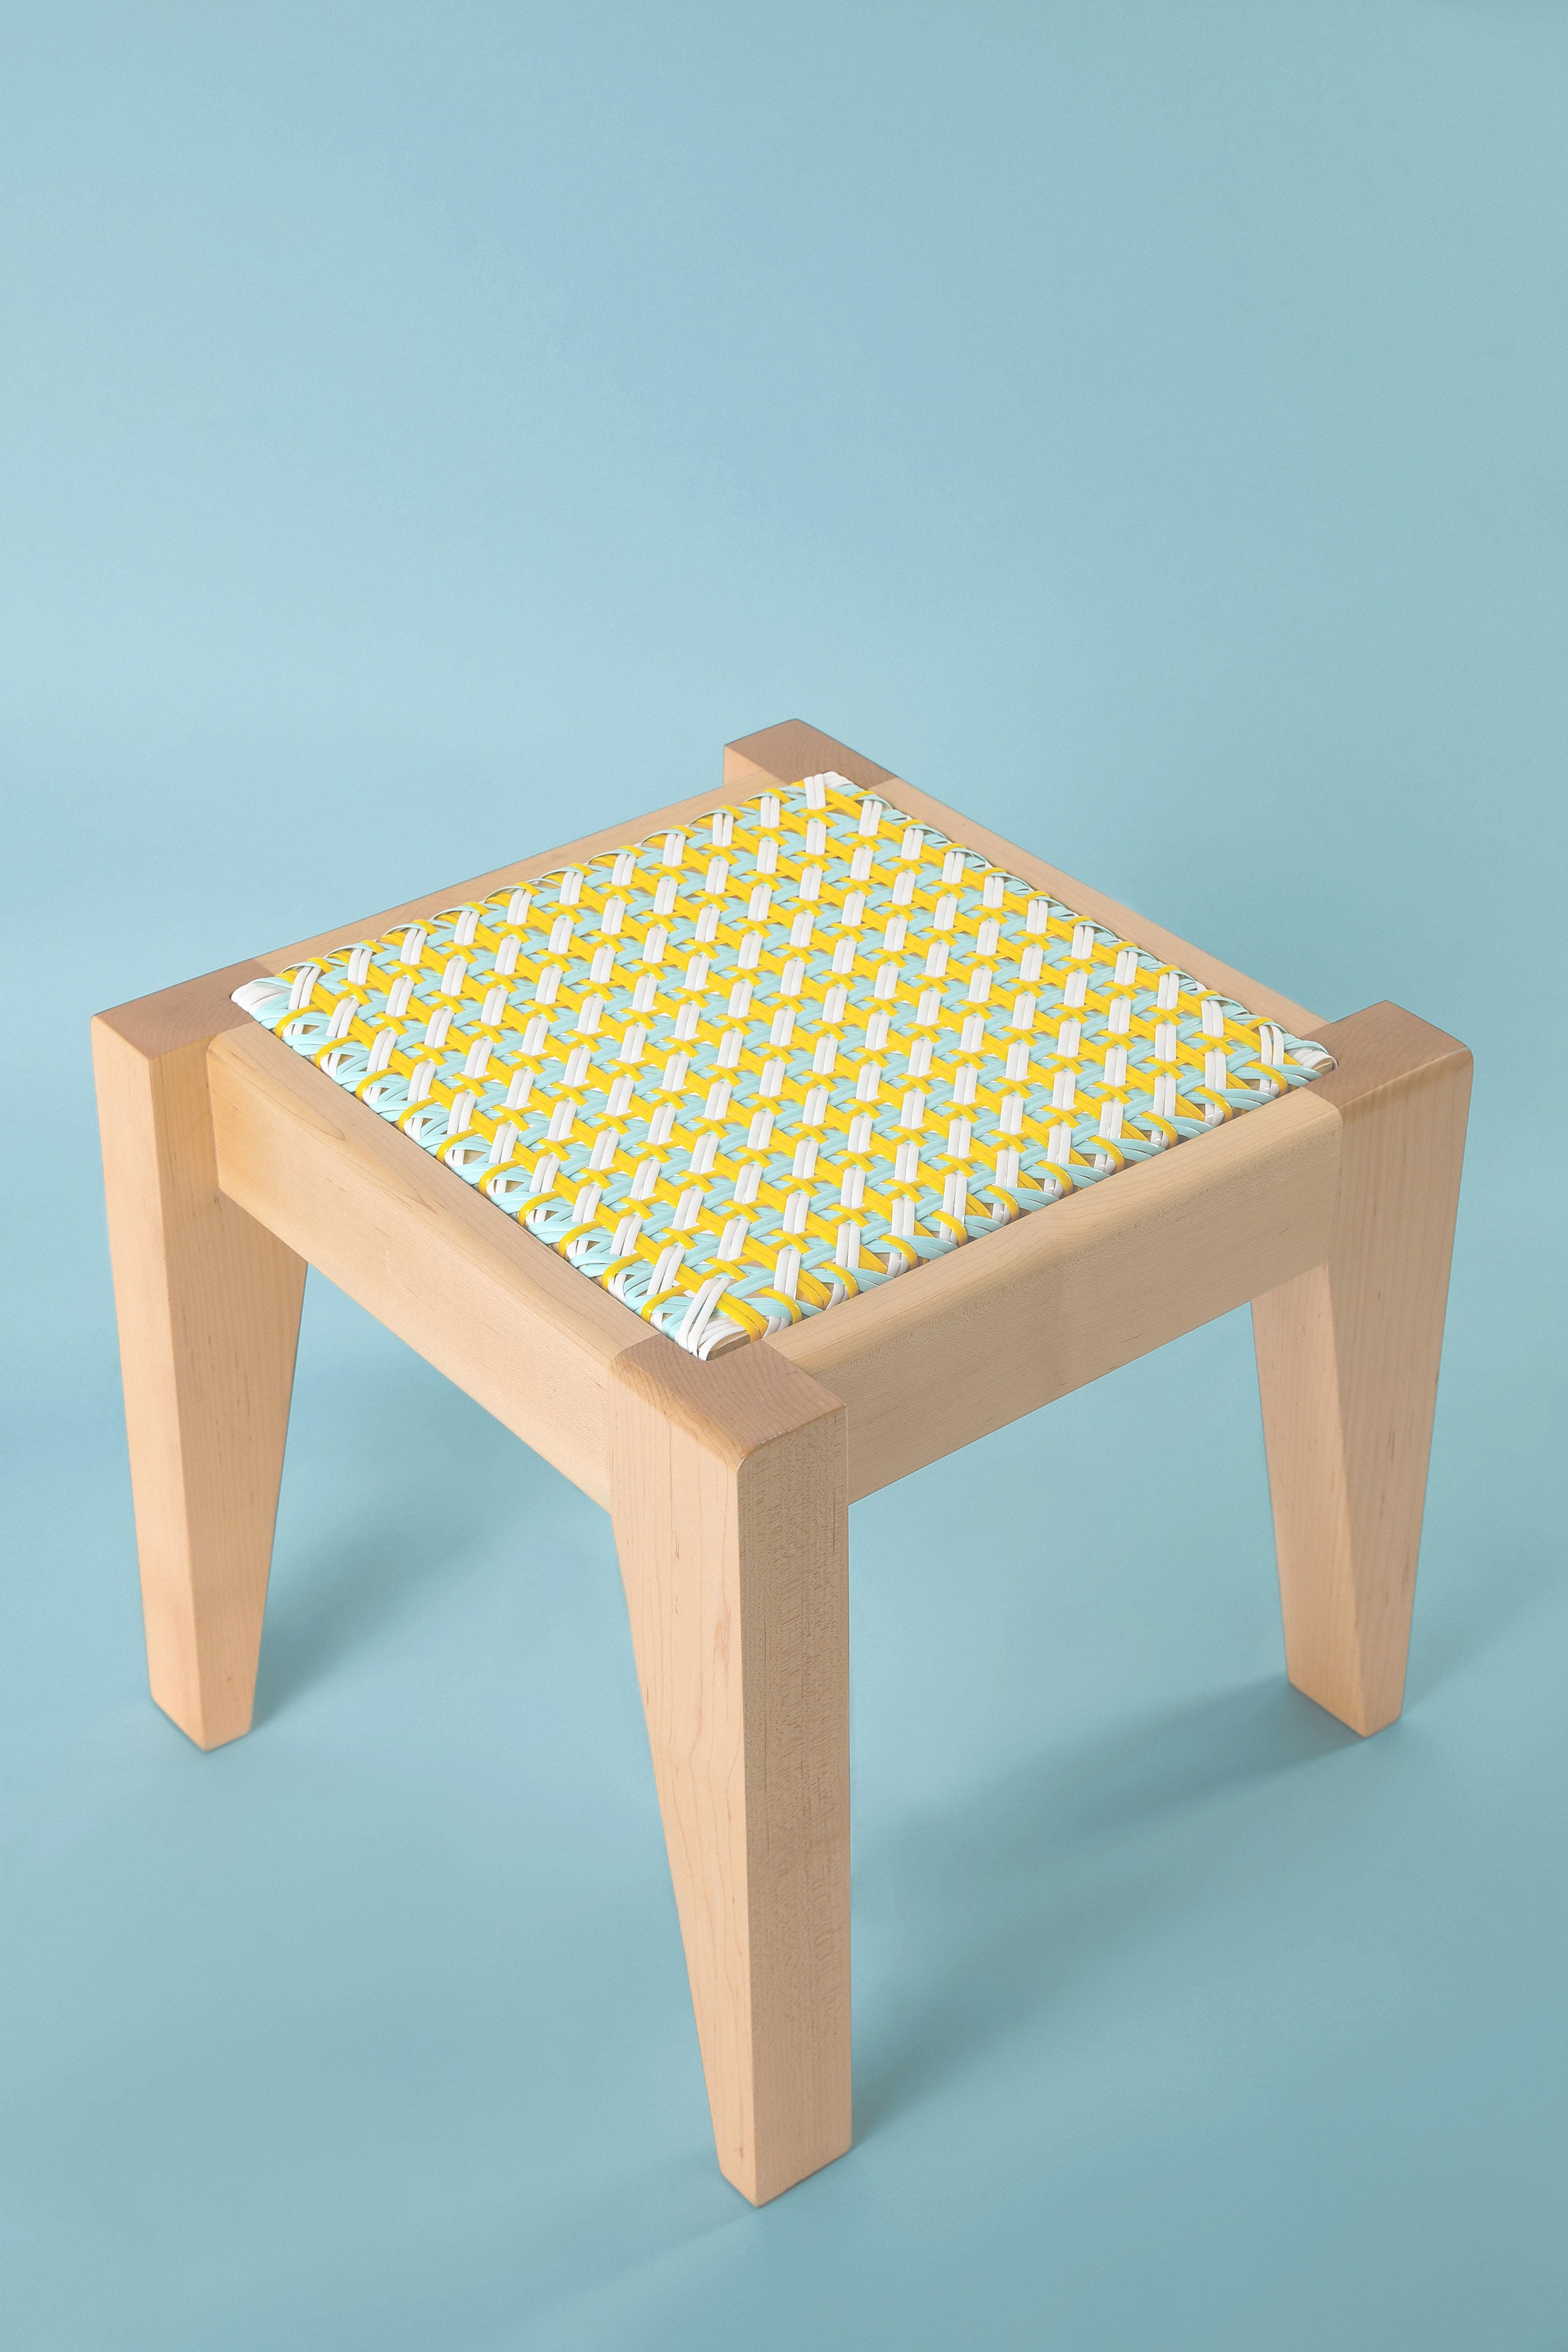 Elias stool form the Beiruti collection of caned timber chairs made in Lebanon designed by Adam Nathaniel Furman